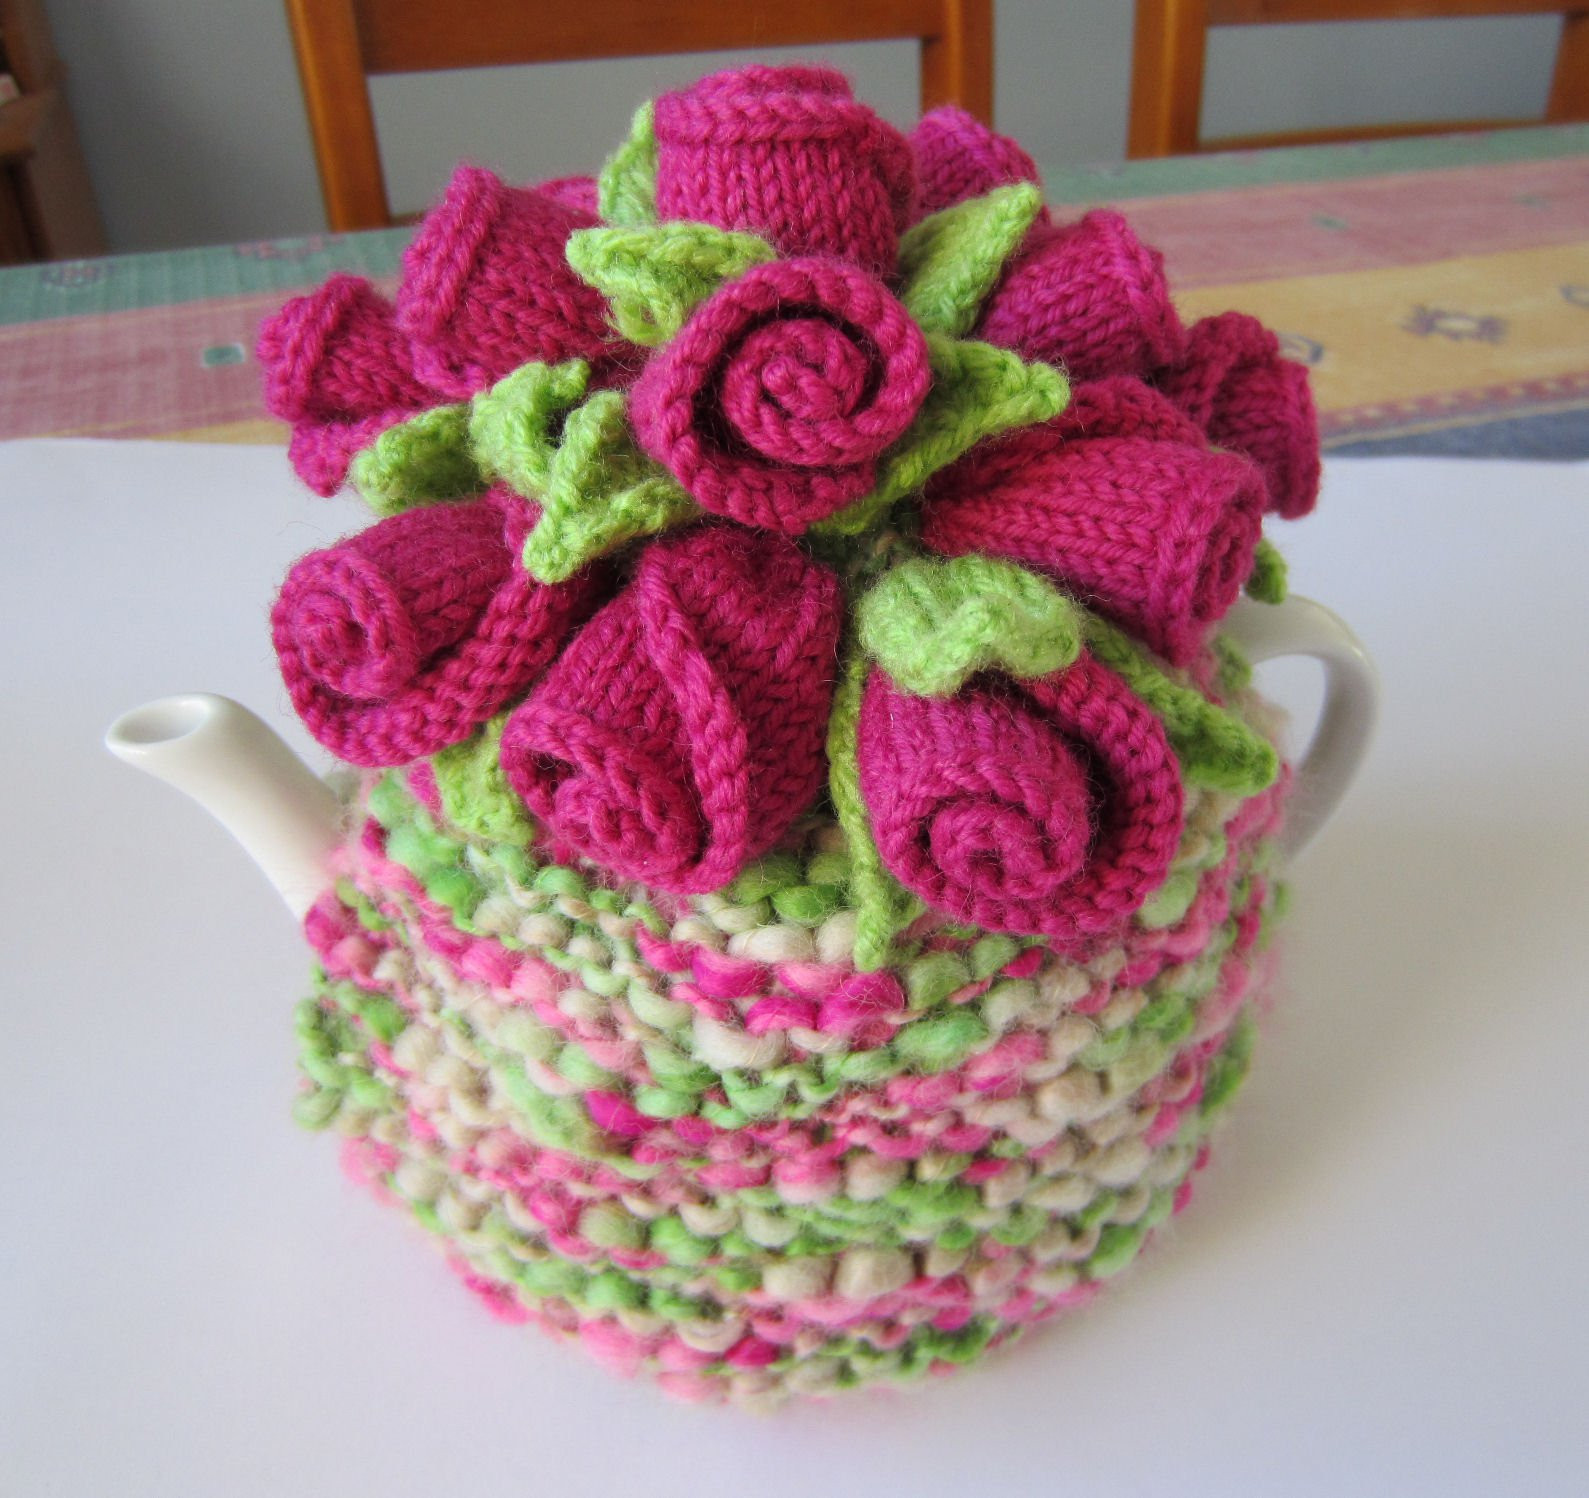 20 Handmade Tea Cozy with Patterns Page 2 of 4